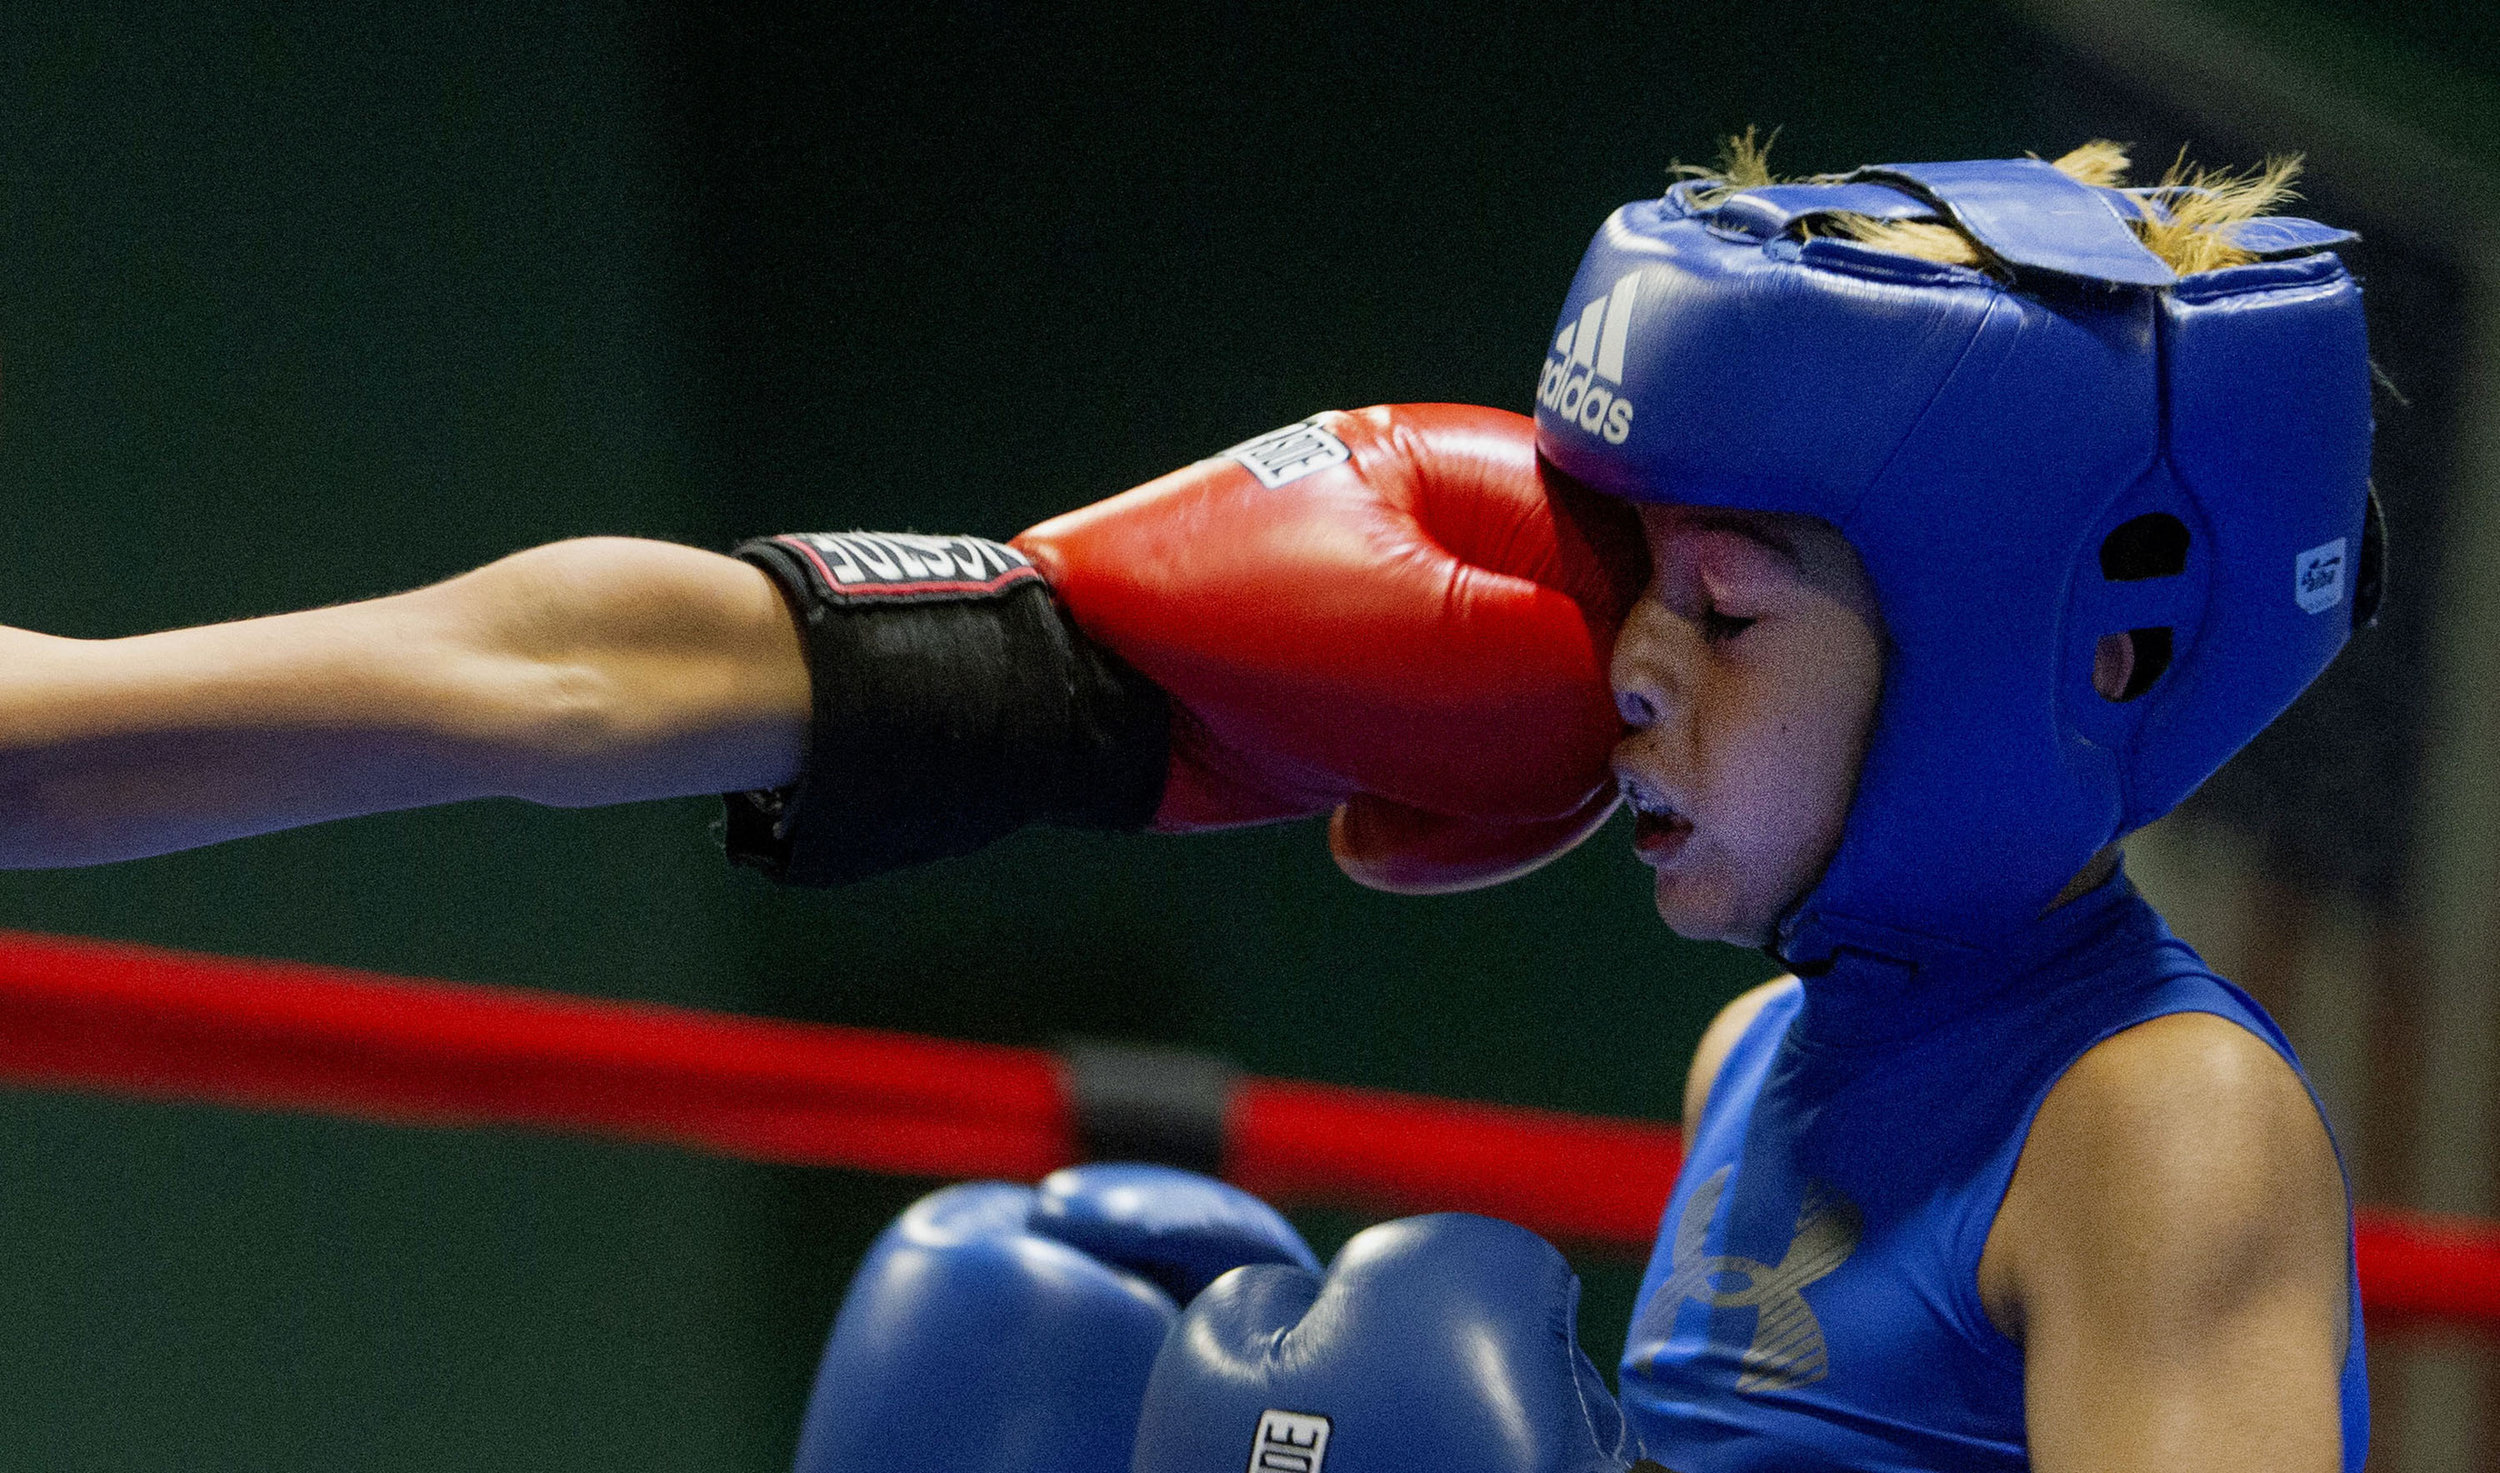 FTP Boxing's Jacob Garcia, 9, of Moreno Valley lands a jab to the face of Compton Boxing's Carlos Ponce, 9, during the Future Olympics Champions at  Lake Perris Sports Pavilion in Perris on Saturday, August 18, 2018.